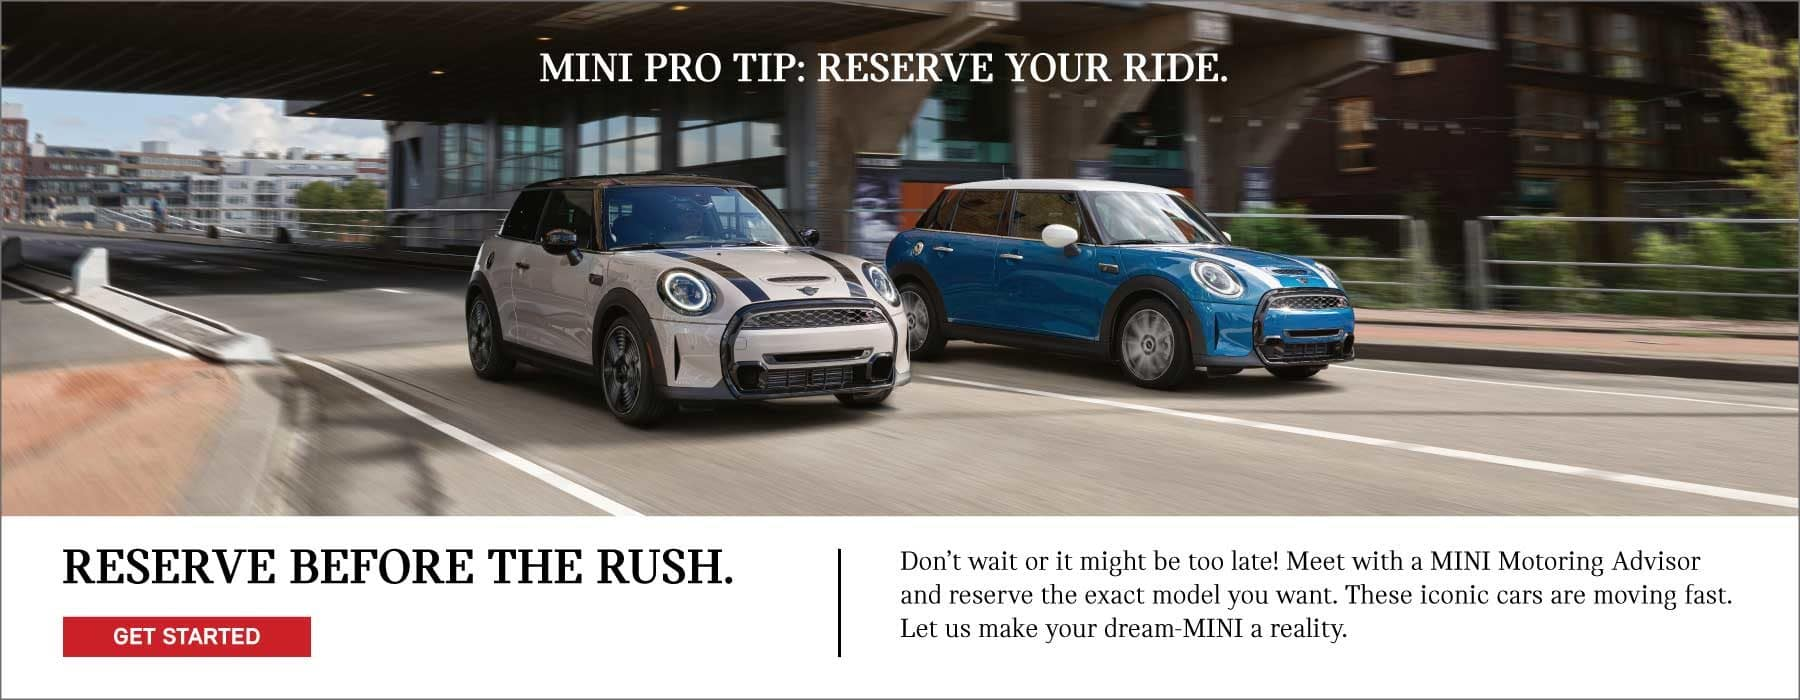 RESERVE YOUR MINI BEFORE THE RUSH. CLICK TO GET STARTED